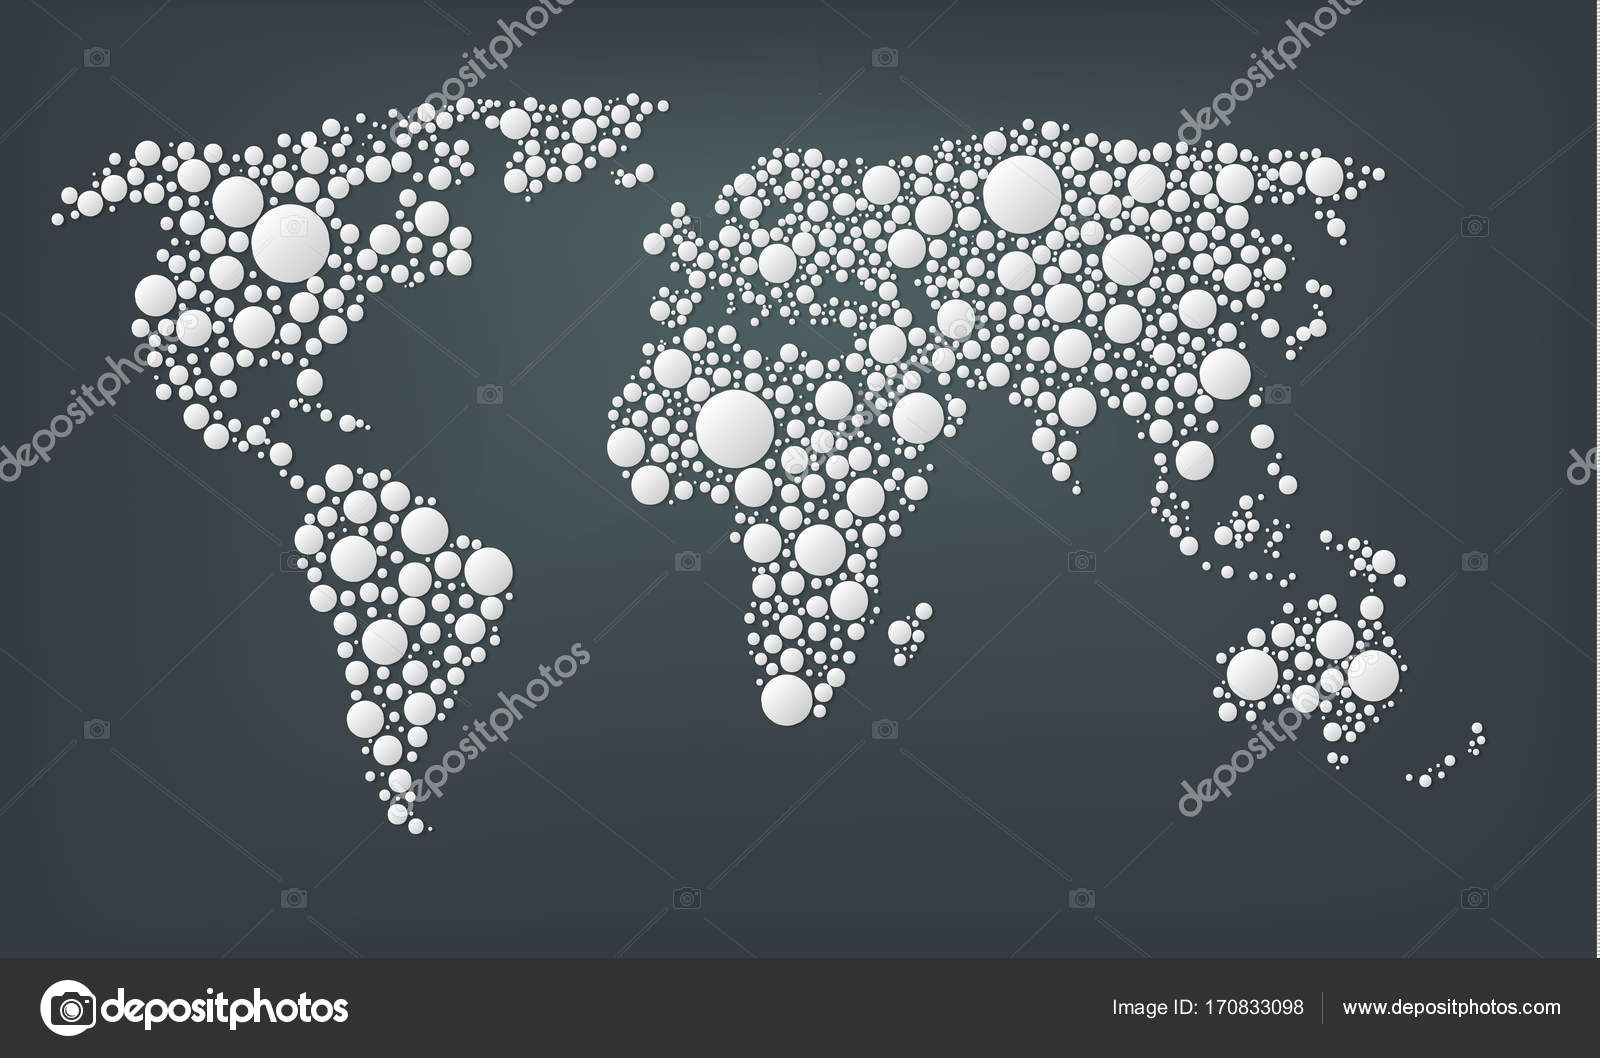 Design of a dots map of the world abstract world map made from design of a dots map of the world abstract world map made from large white round points isolated on a dark background dots style gumiabroncs Gallery